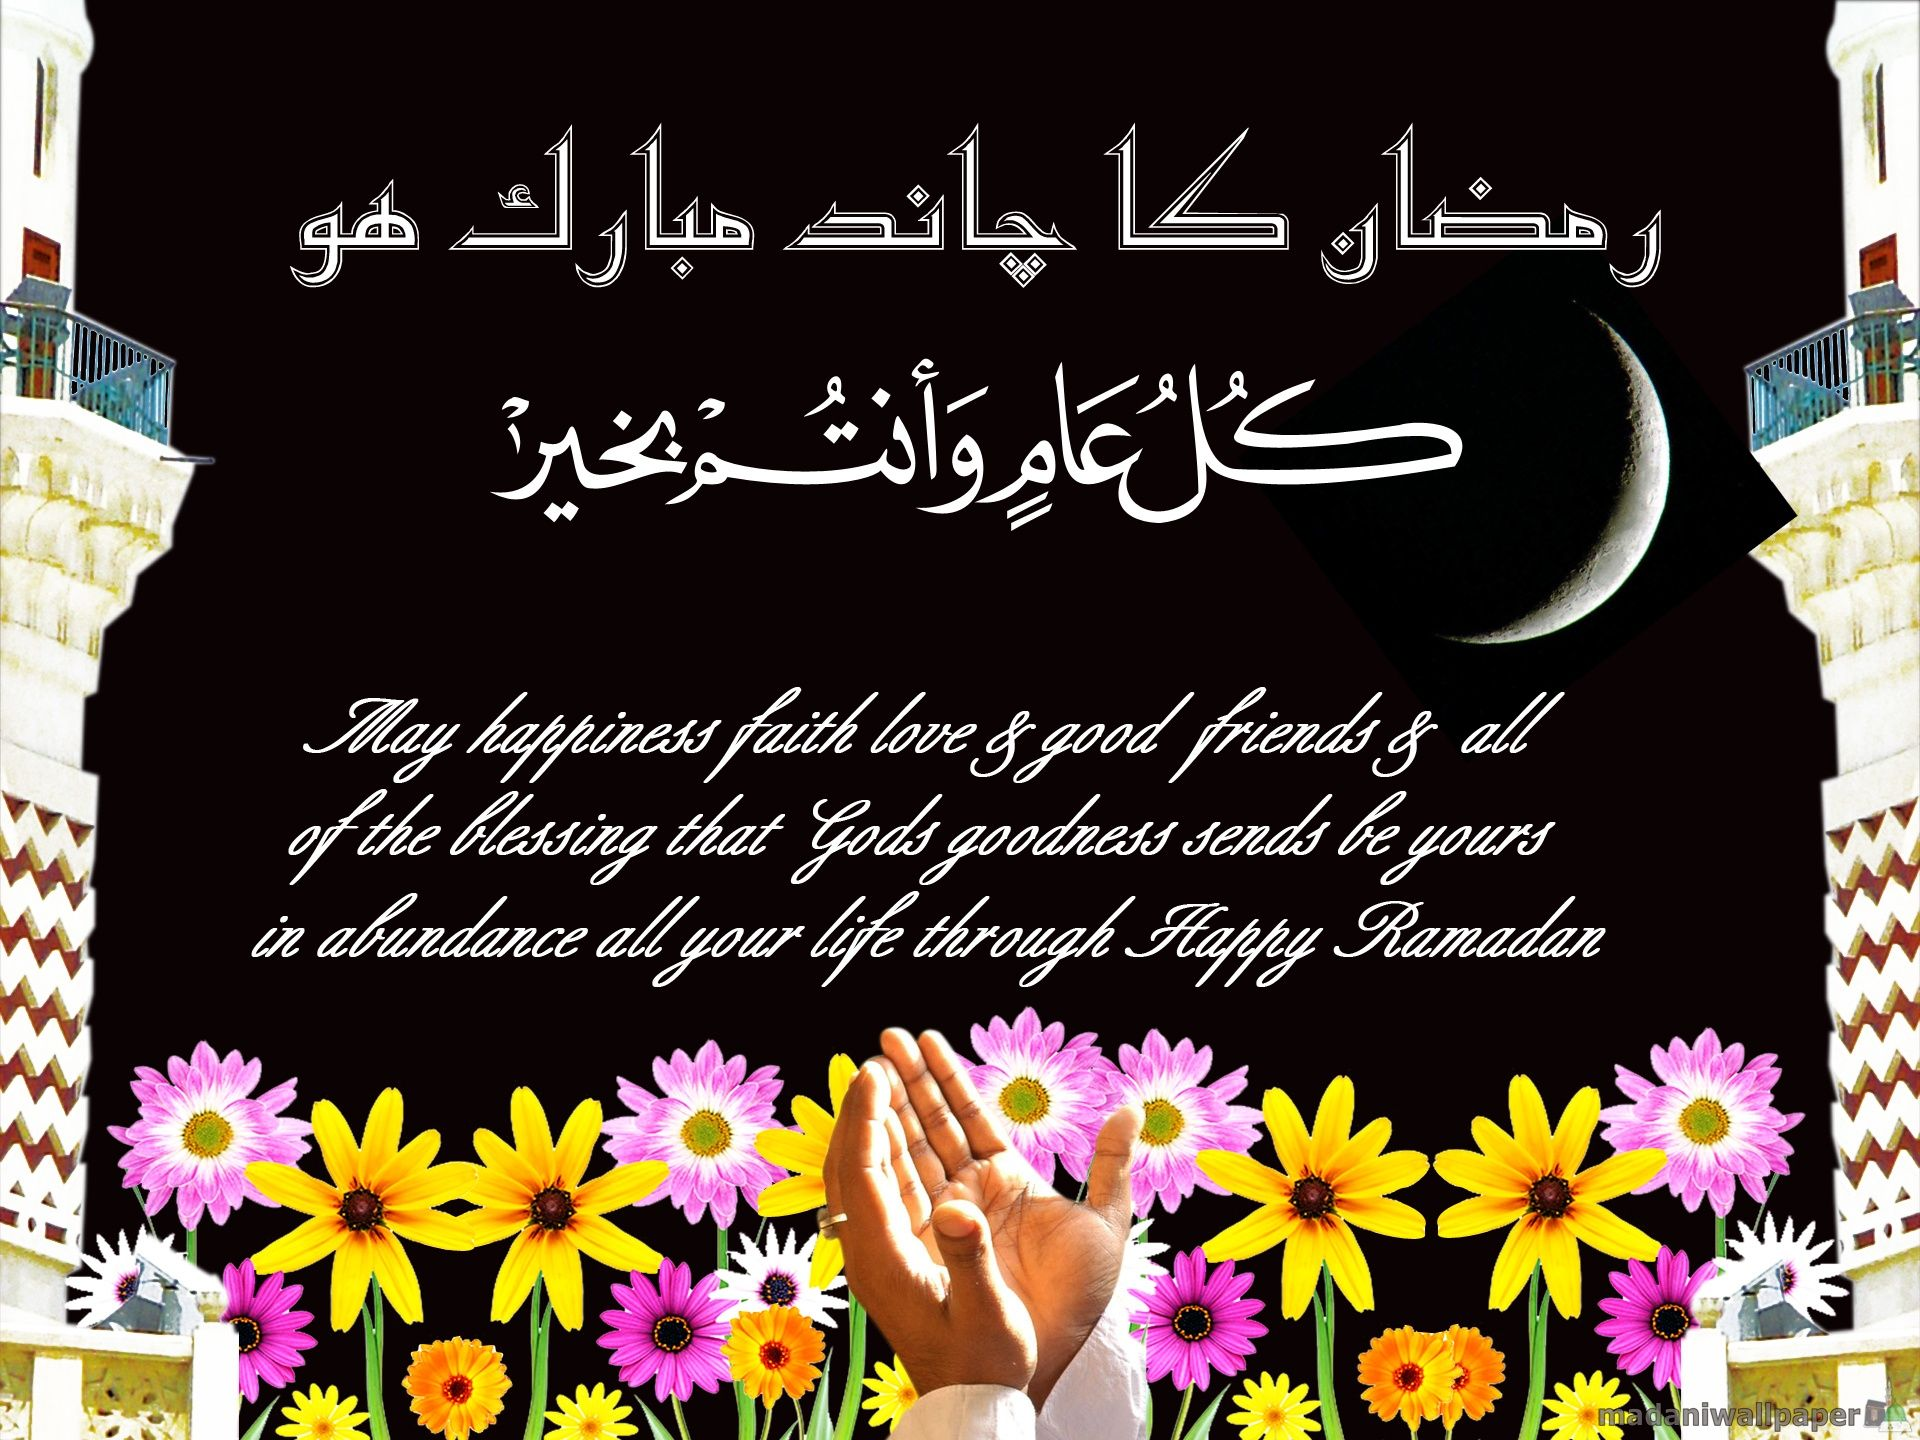 Hd wallpaper ramzan mubarak - Ramadan Mubarak Images Chand Mubarak Pictures Wallpapers